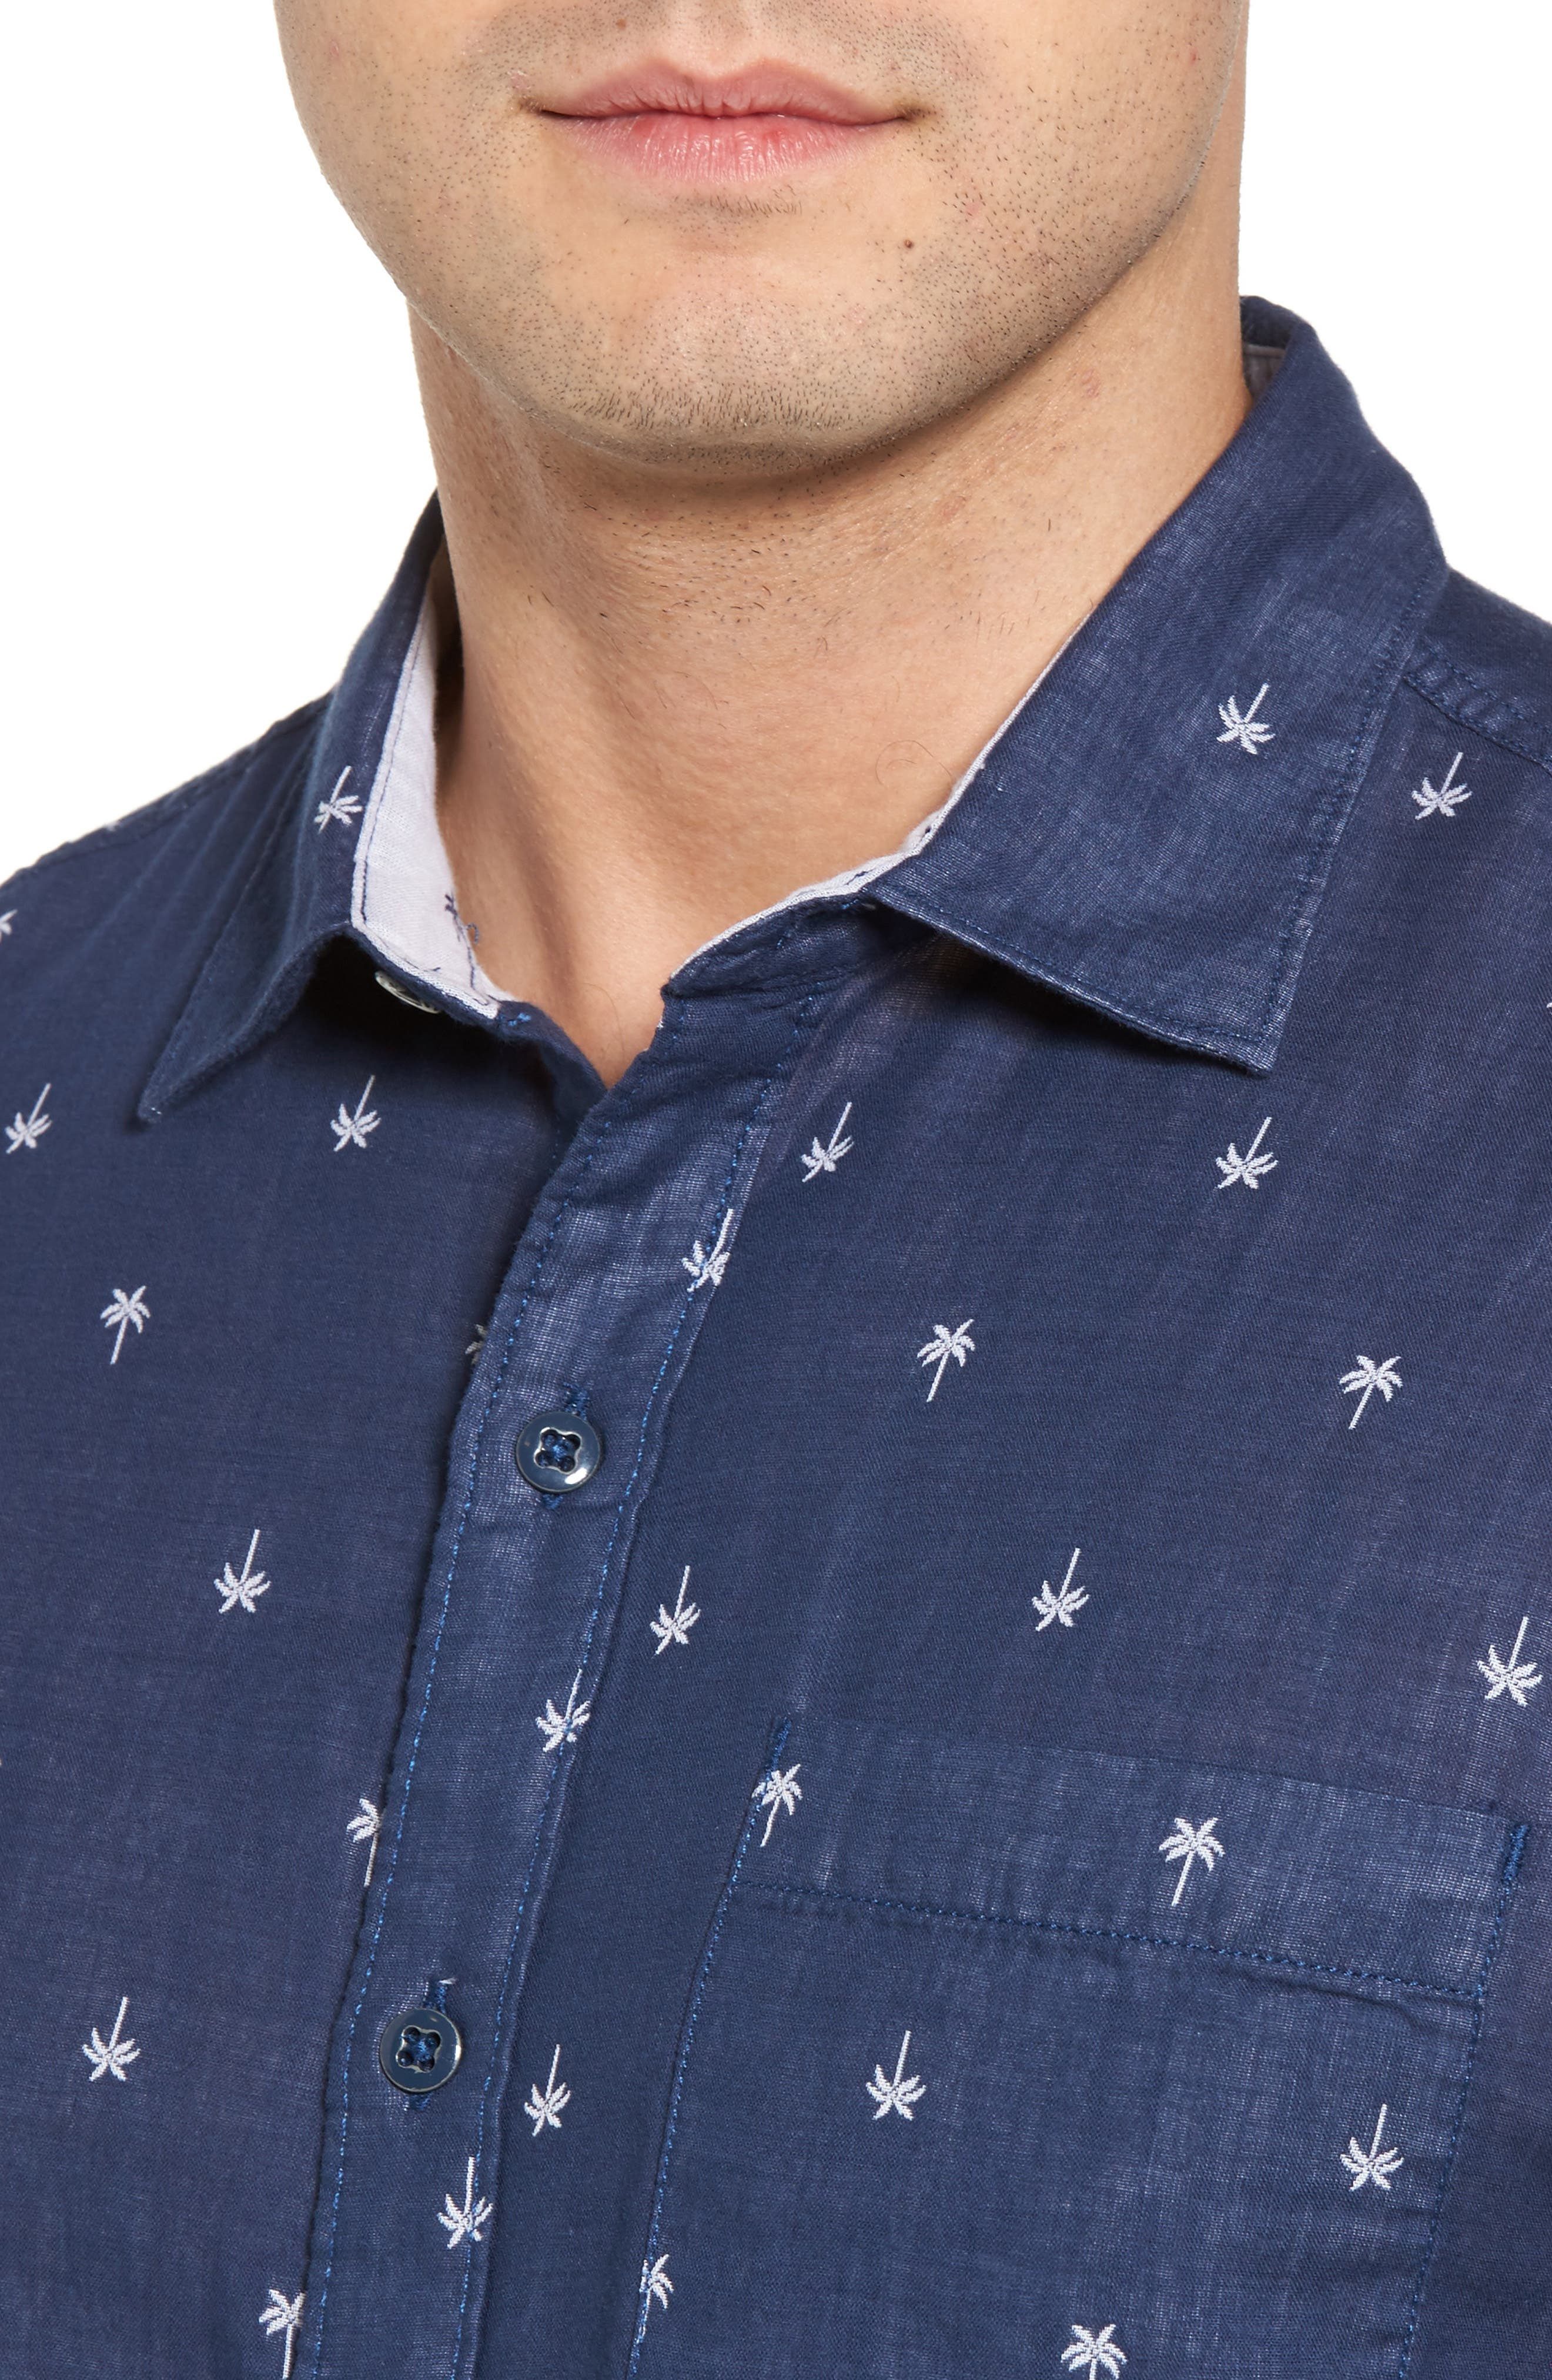 Twin Palms Embroidered Cotton Sport Shirt,                             Alternate thumbnail 4, color,                             Throne Blue